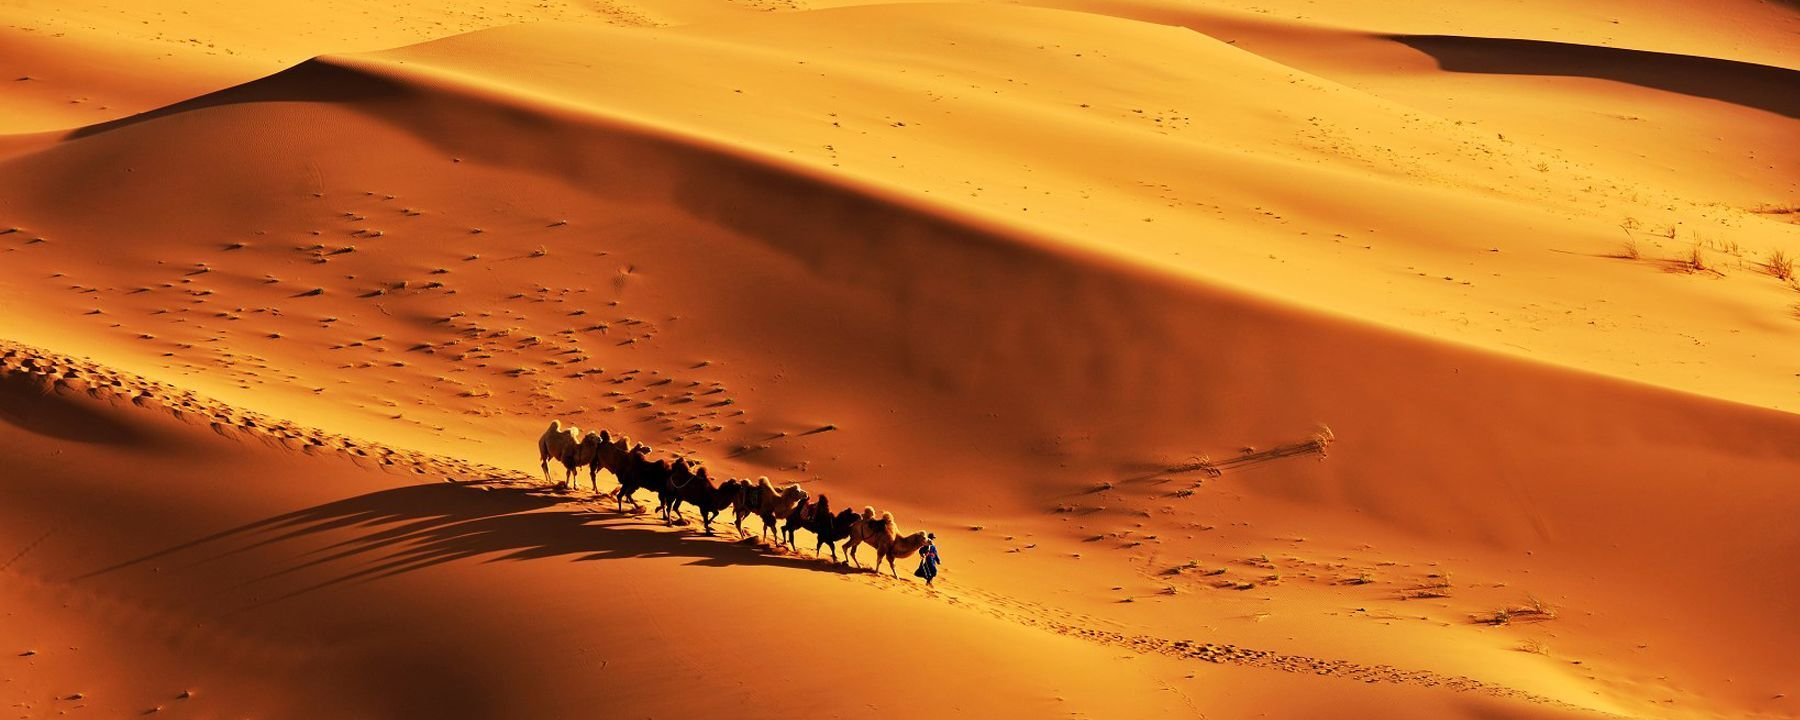 Desert along the Silk road